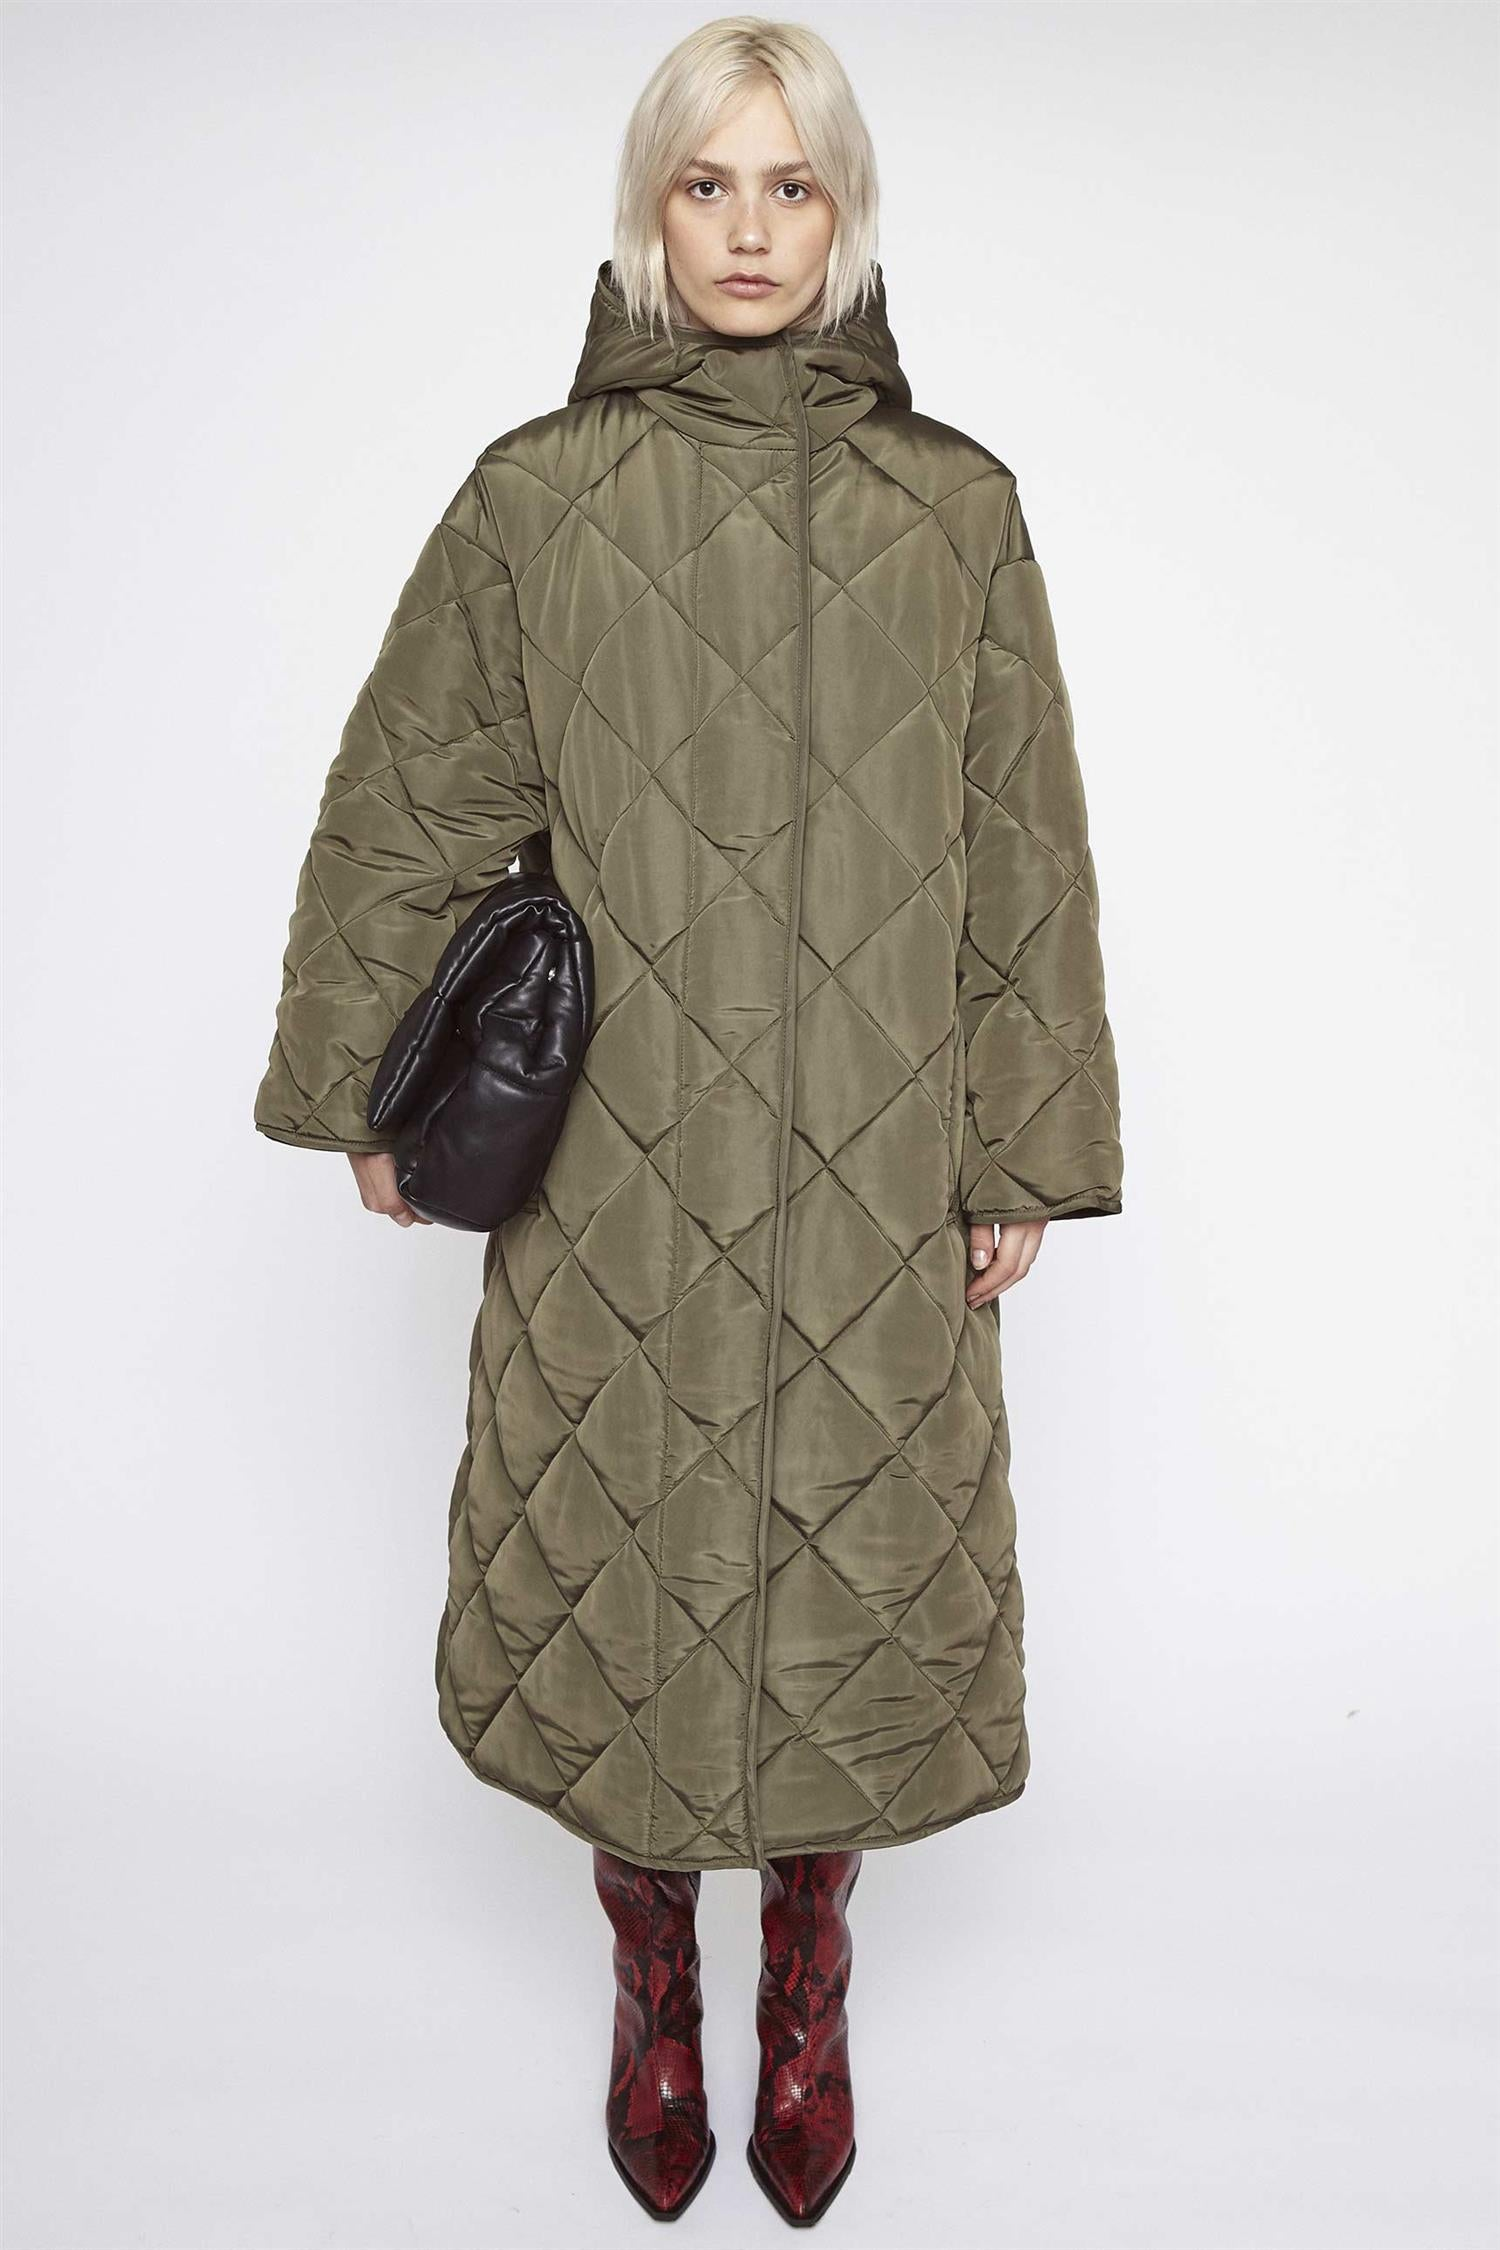 STAND STUDIO SUE COAT